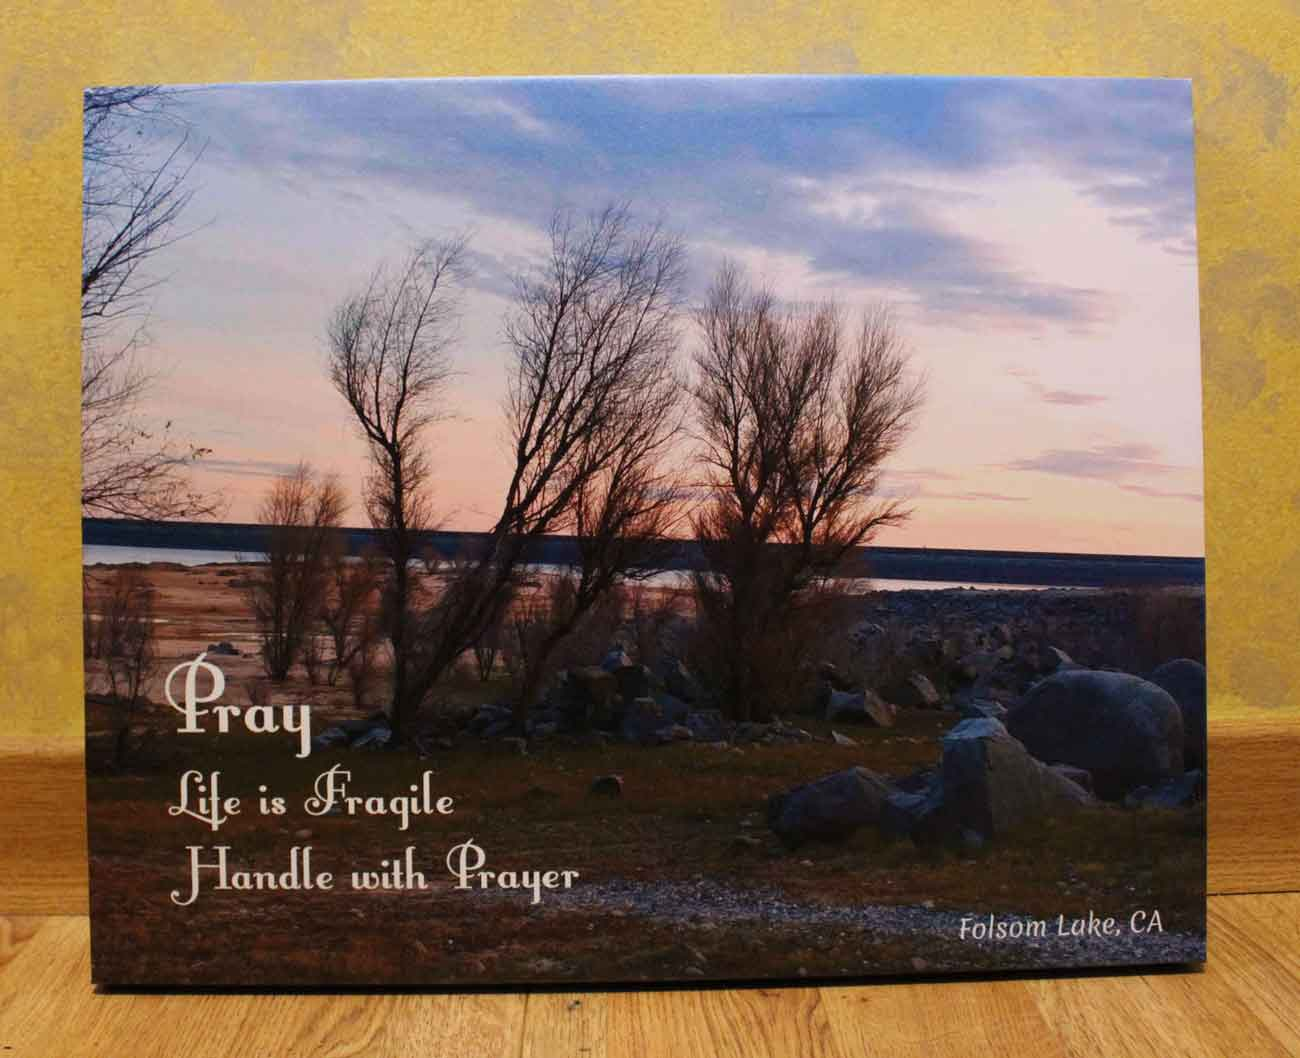 Folsom Lake UV Printed on Canvas - Christian Gift